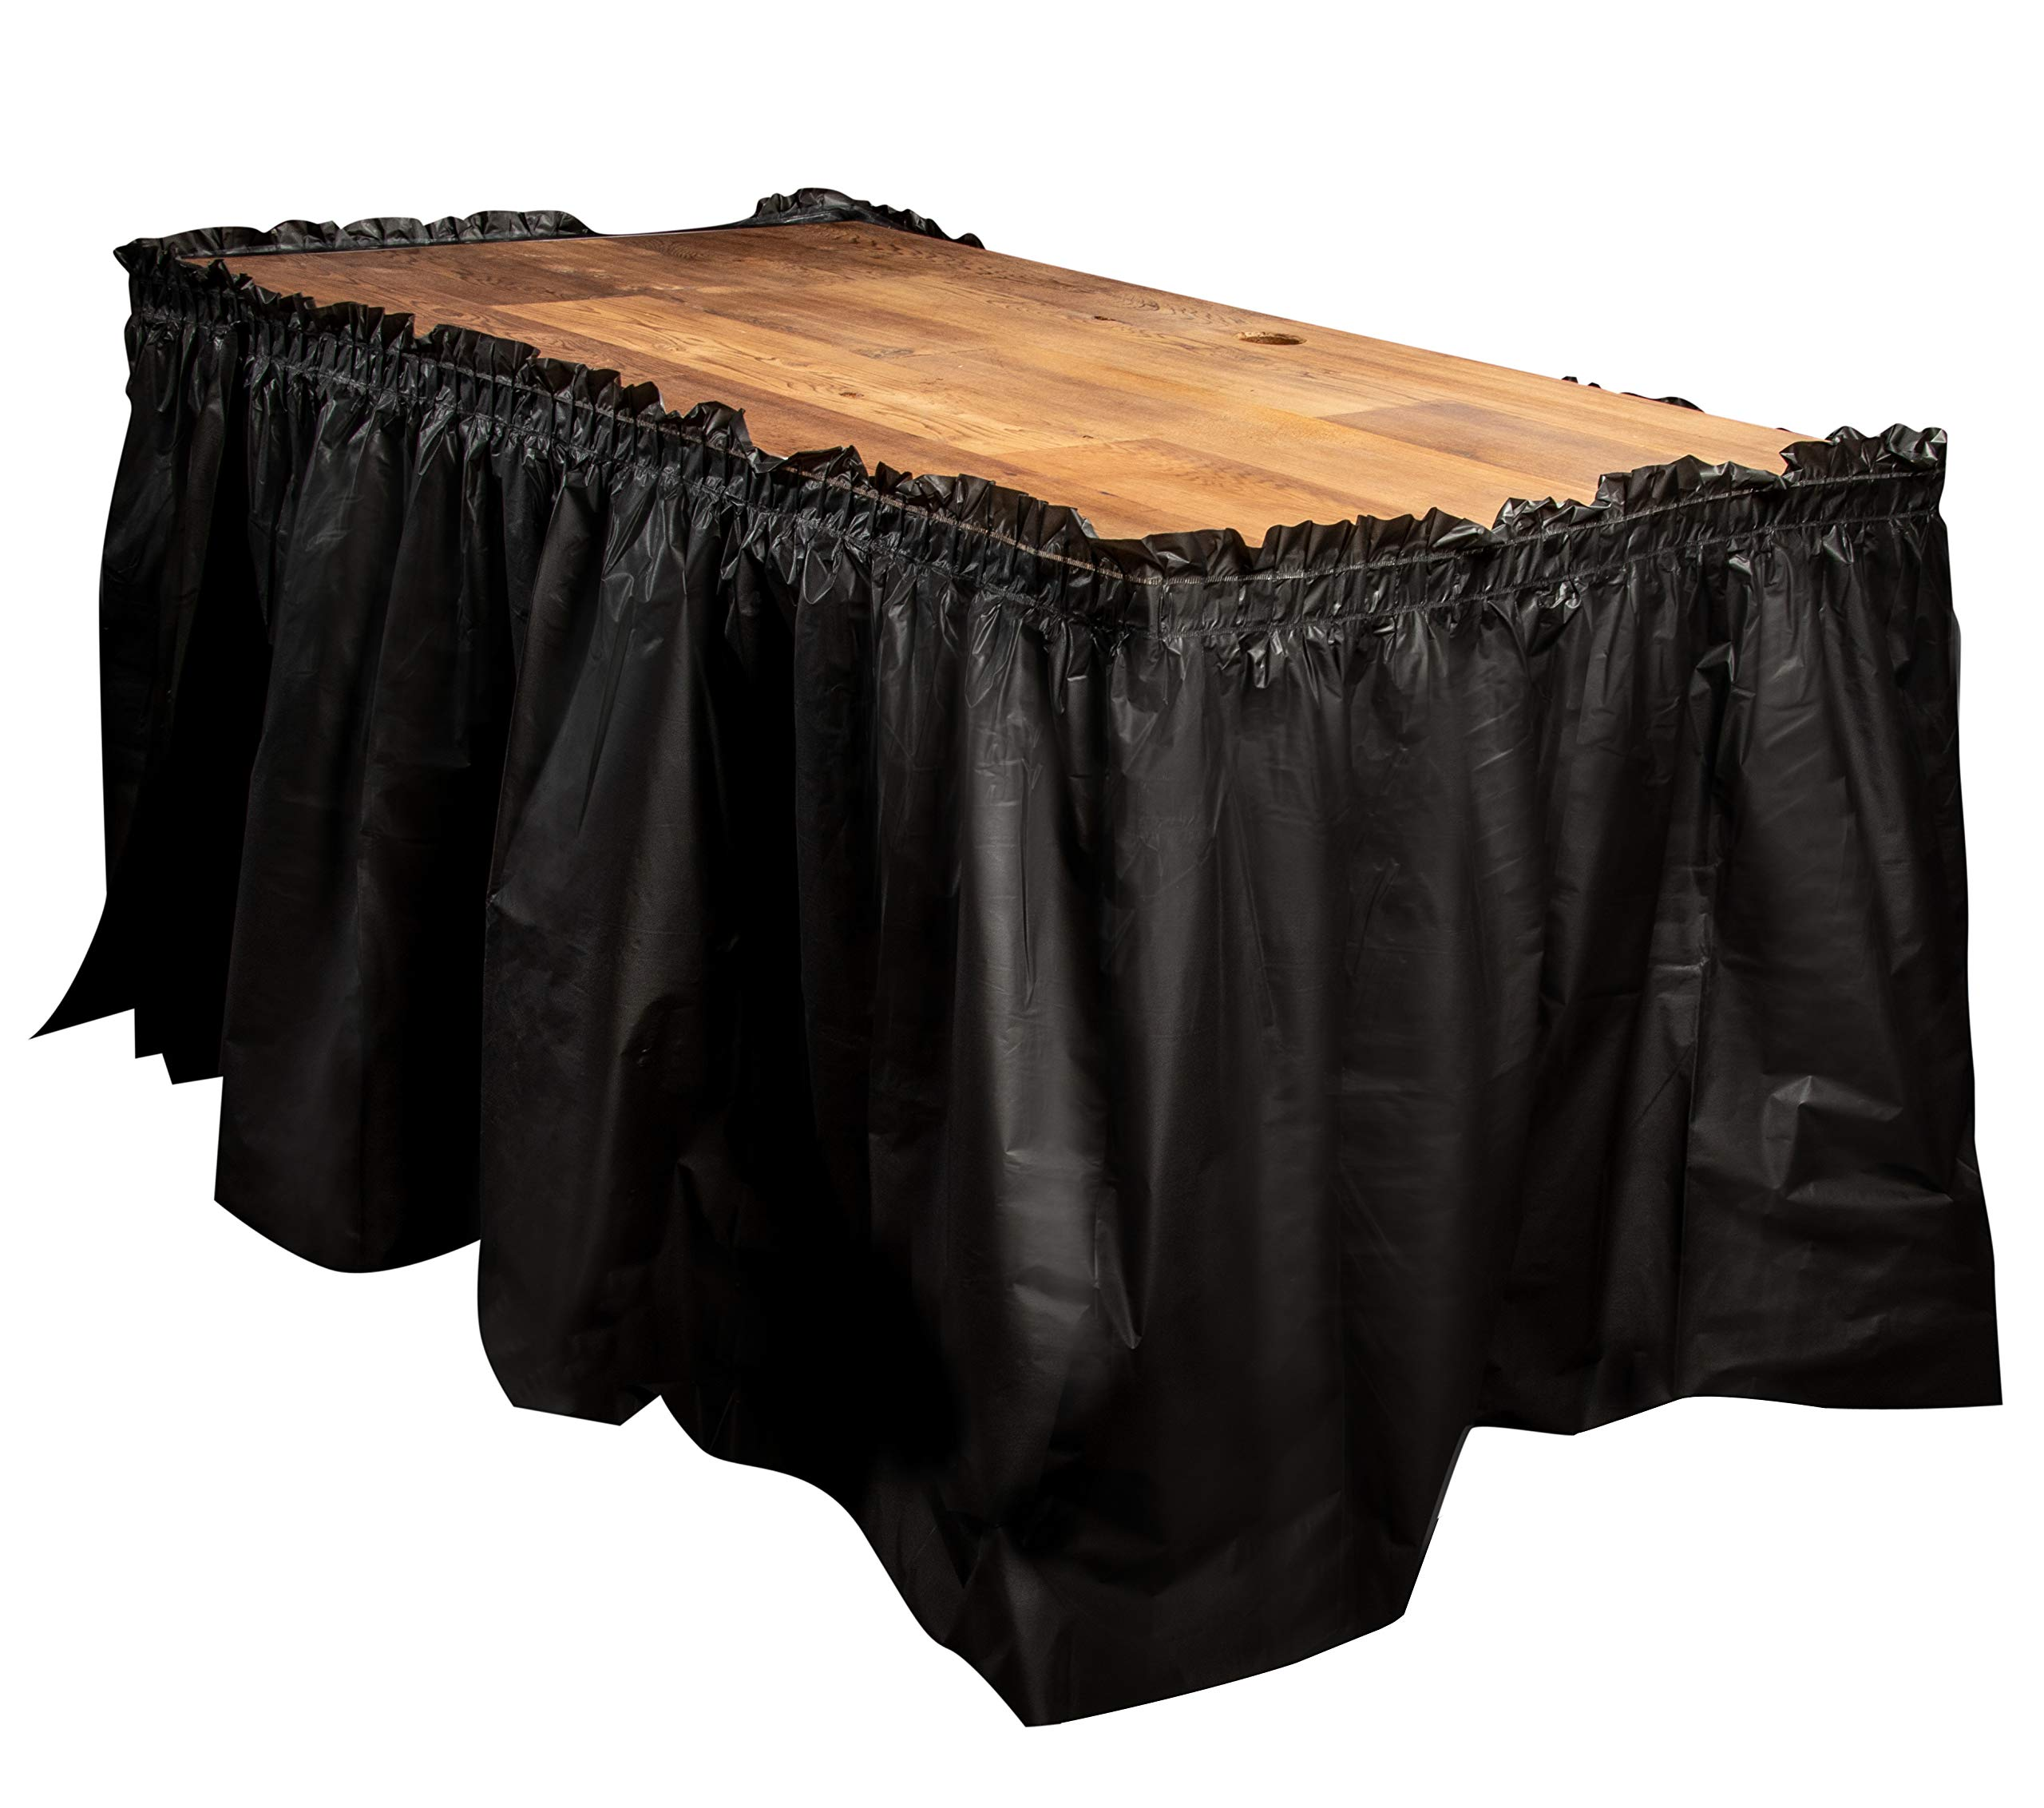 Disposable Table Skirts – 6-Pack Ruffled Plastic Table Skirts – Perfect for Weddings, Engagement Parties, Birthdays, Business Events, Baby Showers, Black, Suitable for Tables Up To 8 Feet Long